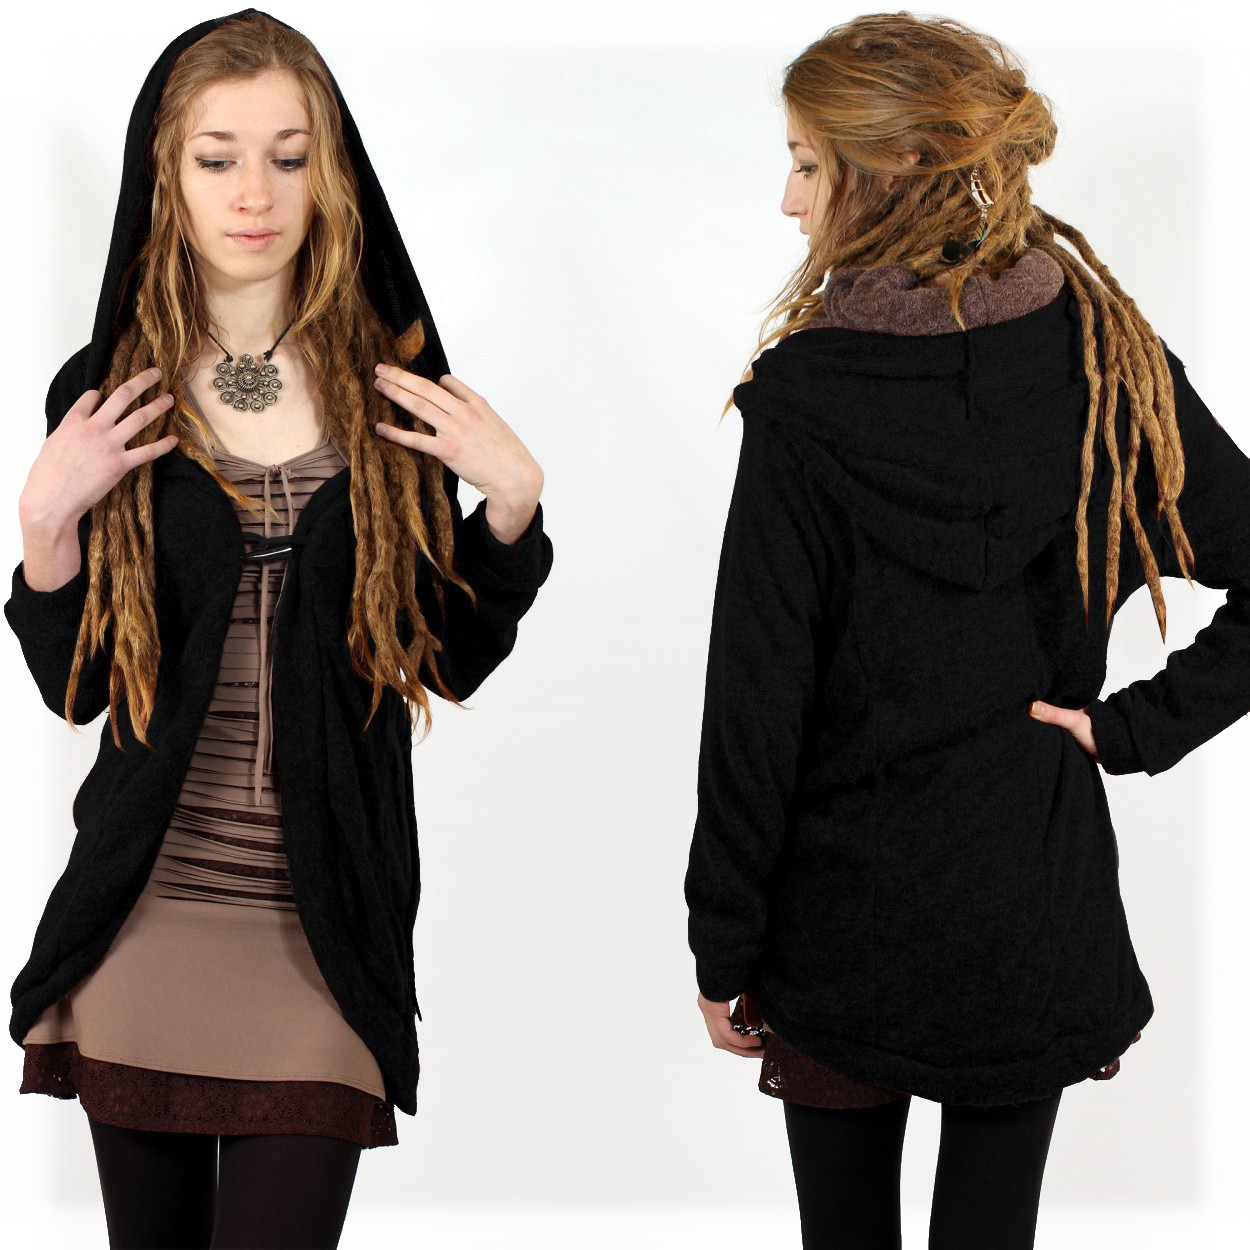 ""\""""Thin Shandili"""" Witch pullover, Black""1250|1250|?|en|2|1ae32eeaa4774875fba282a9f1a2cd8c|False|UNLIKELY|0.29759612679481506